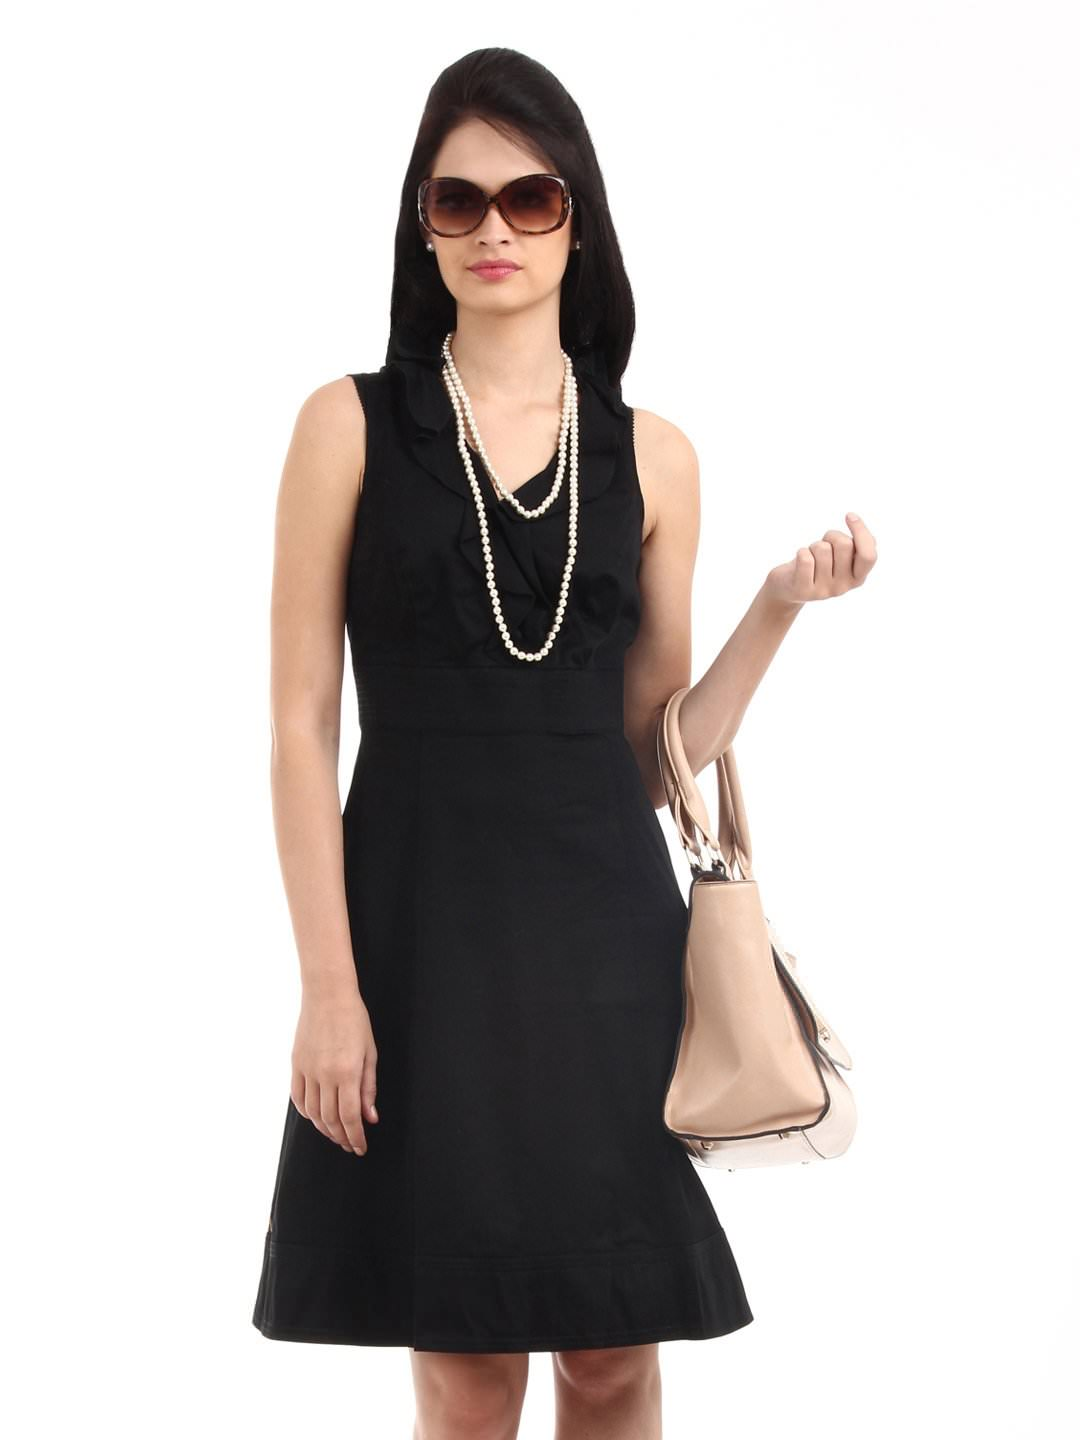 Plus Size Womens Dresses At Dillards – Shopping Guide. We ...